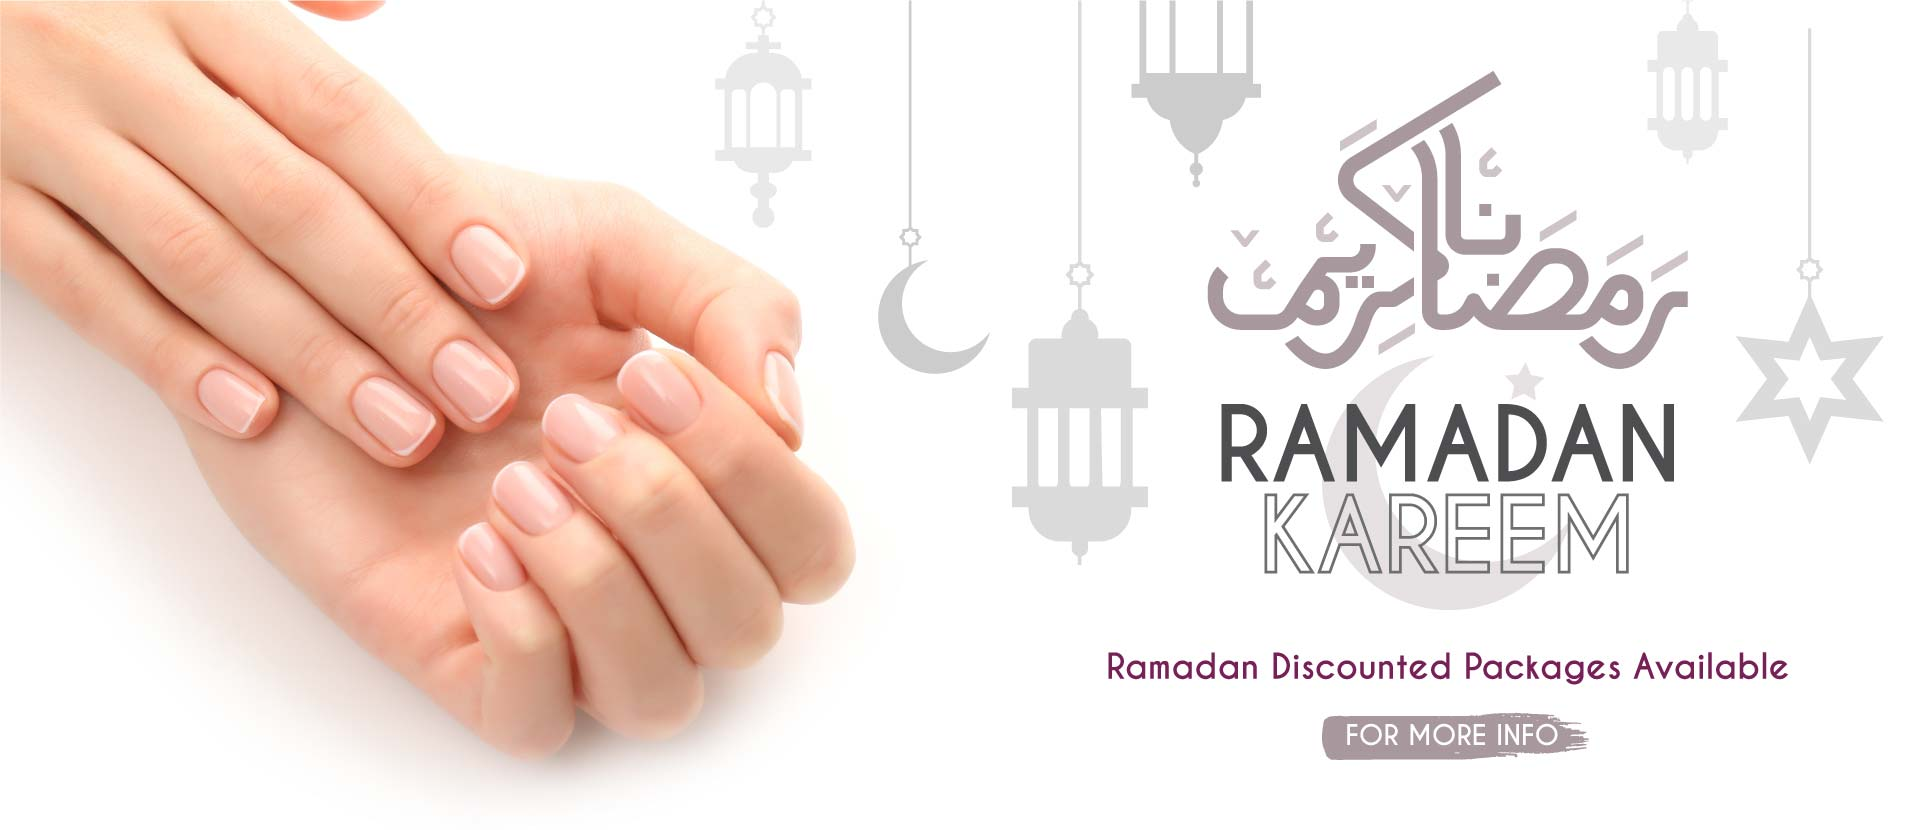 RAMADAN DISCOUNTED PACKAGES